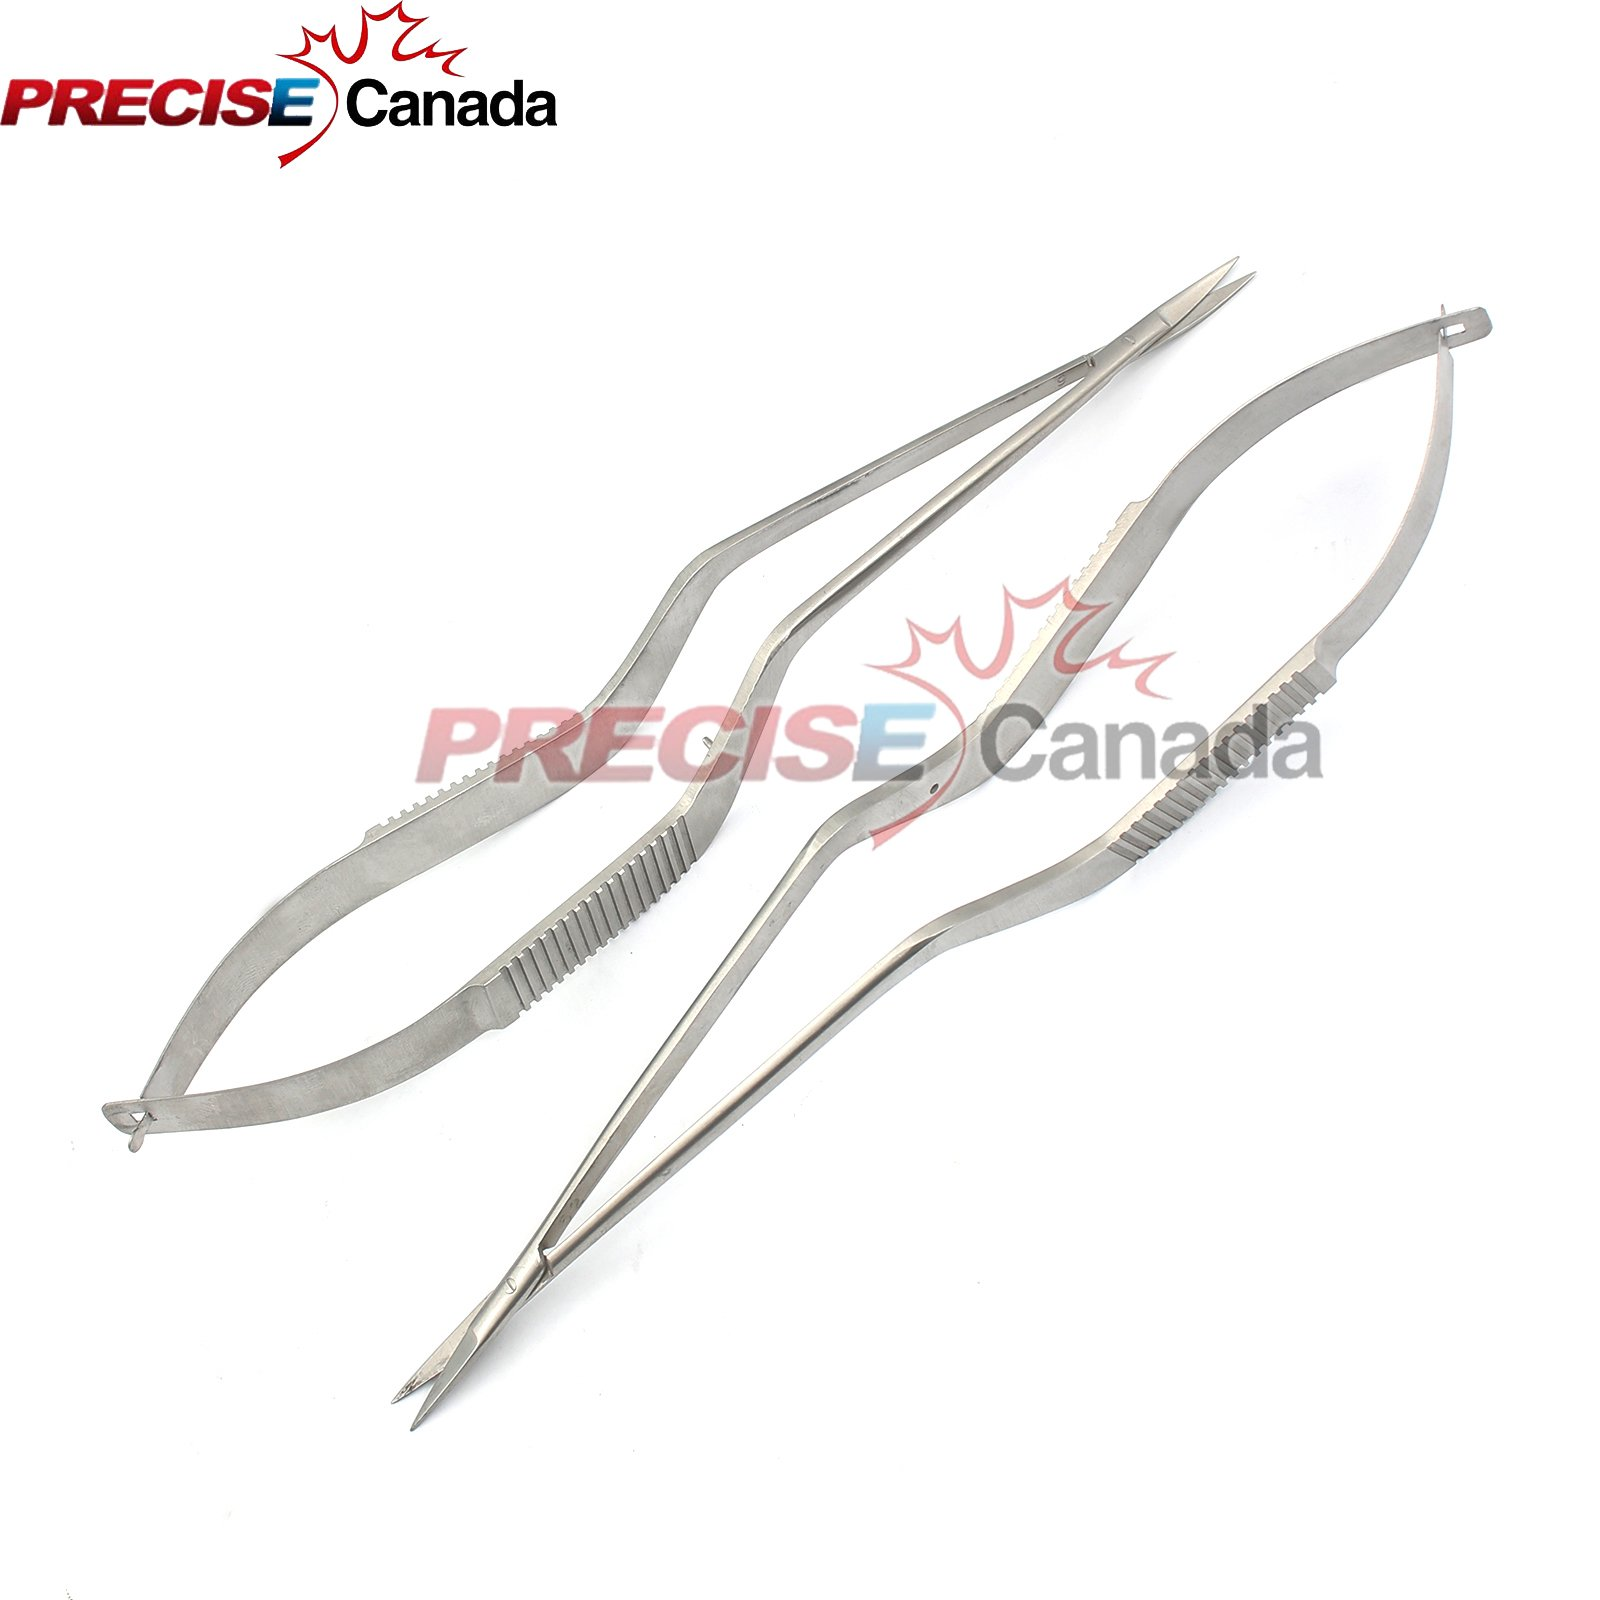 PRECISE CANADA: TWO PIECES YASARGIL BAYONET MICRO SCISSORS 7.5'' ONE STR, ONE CVD